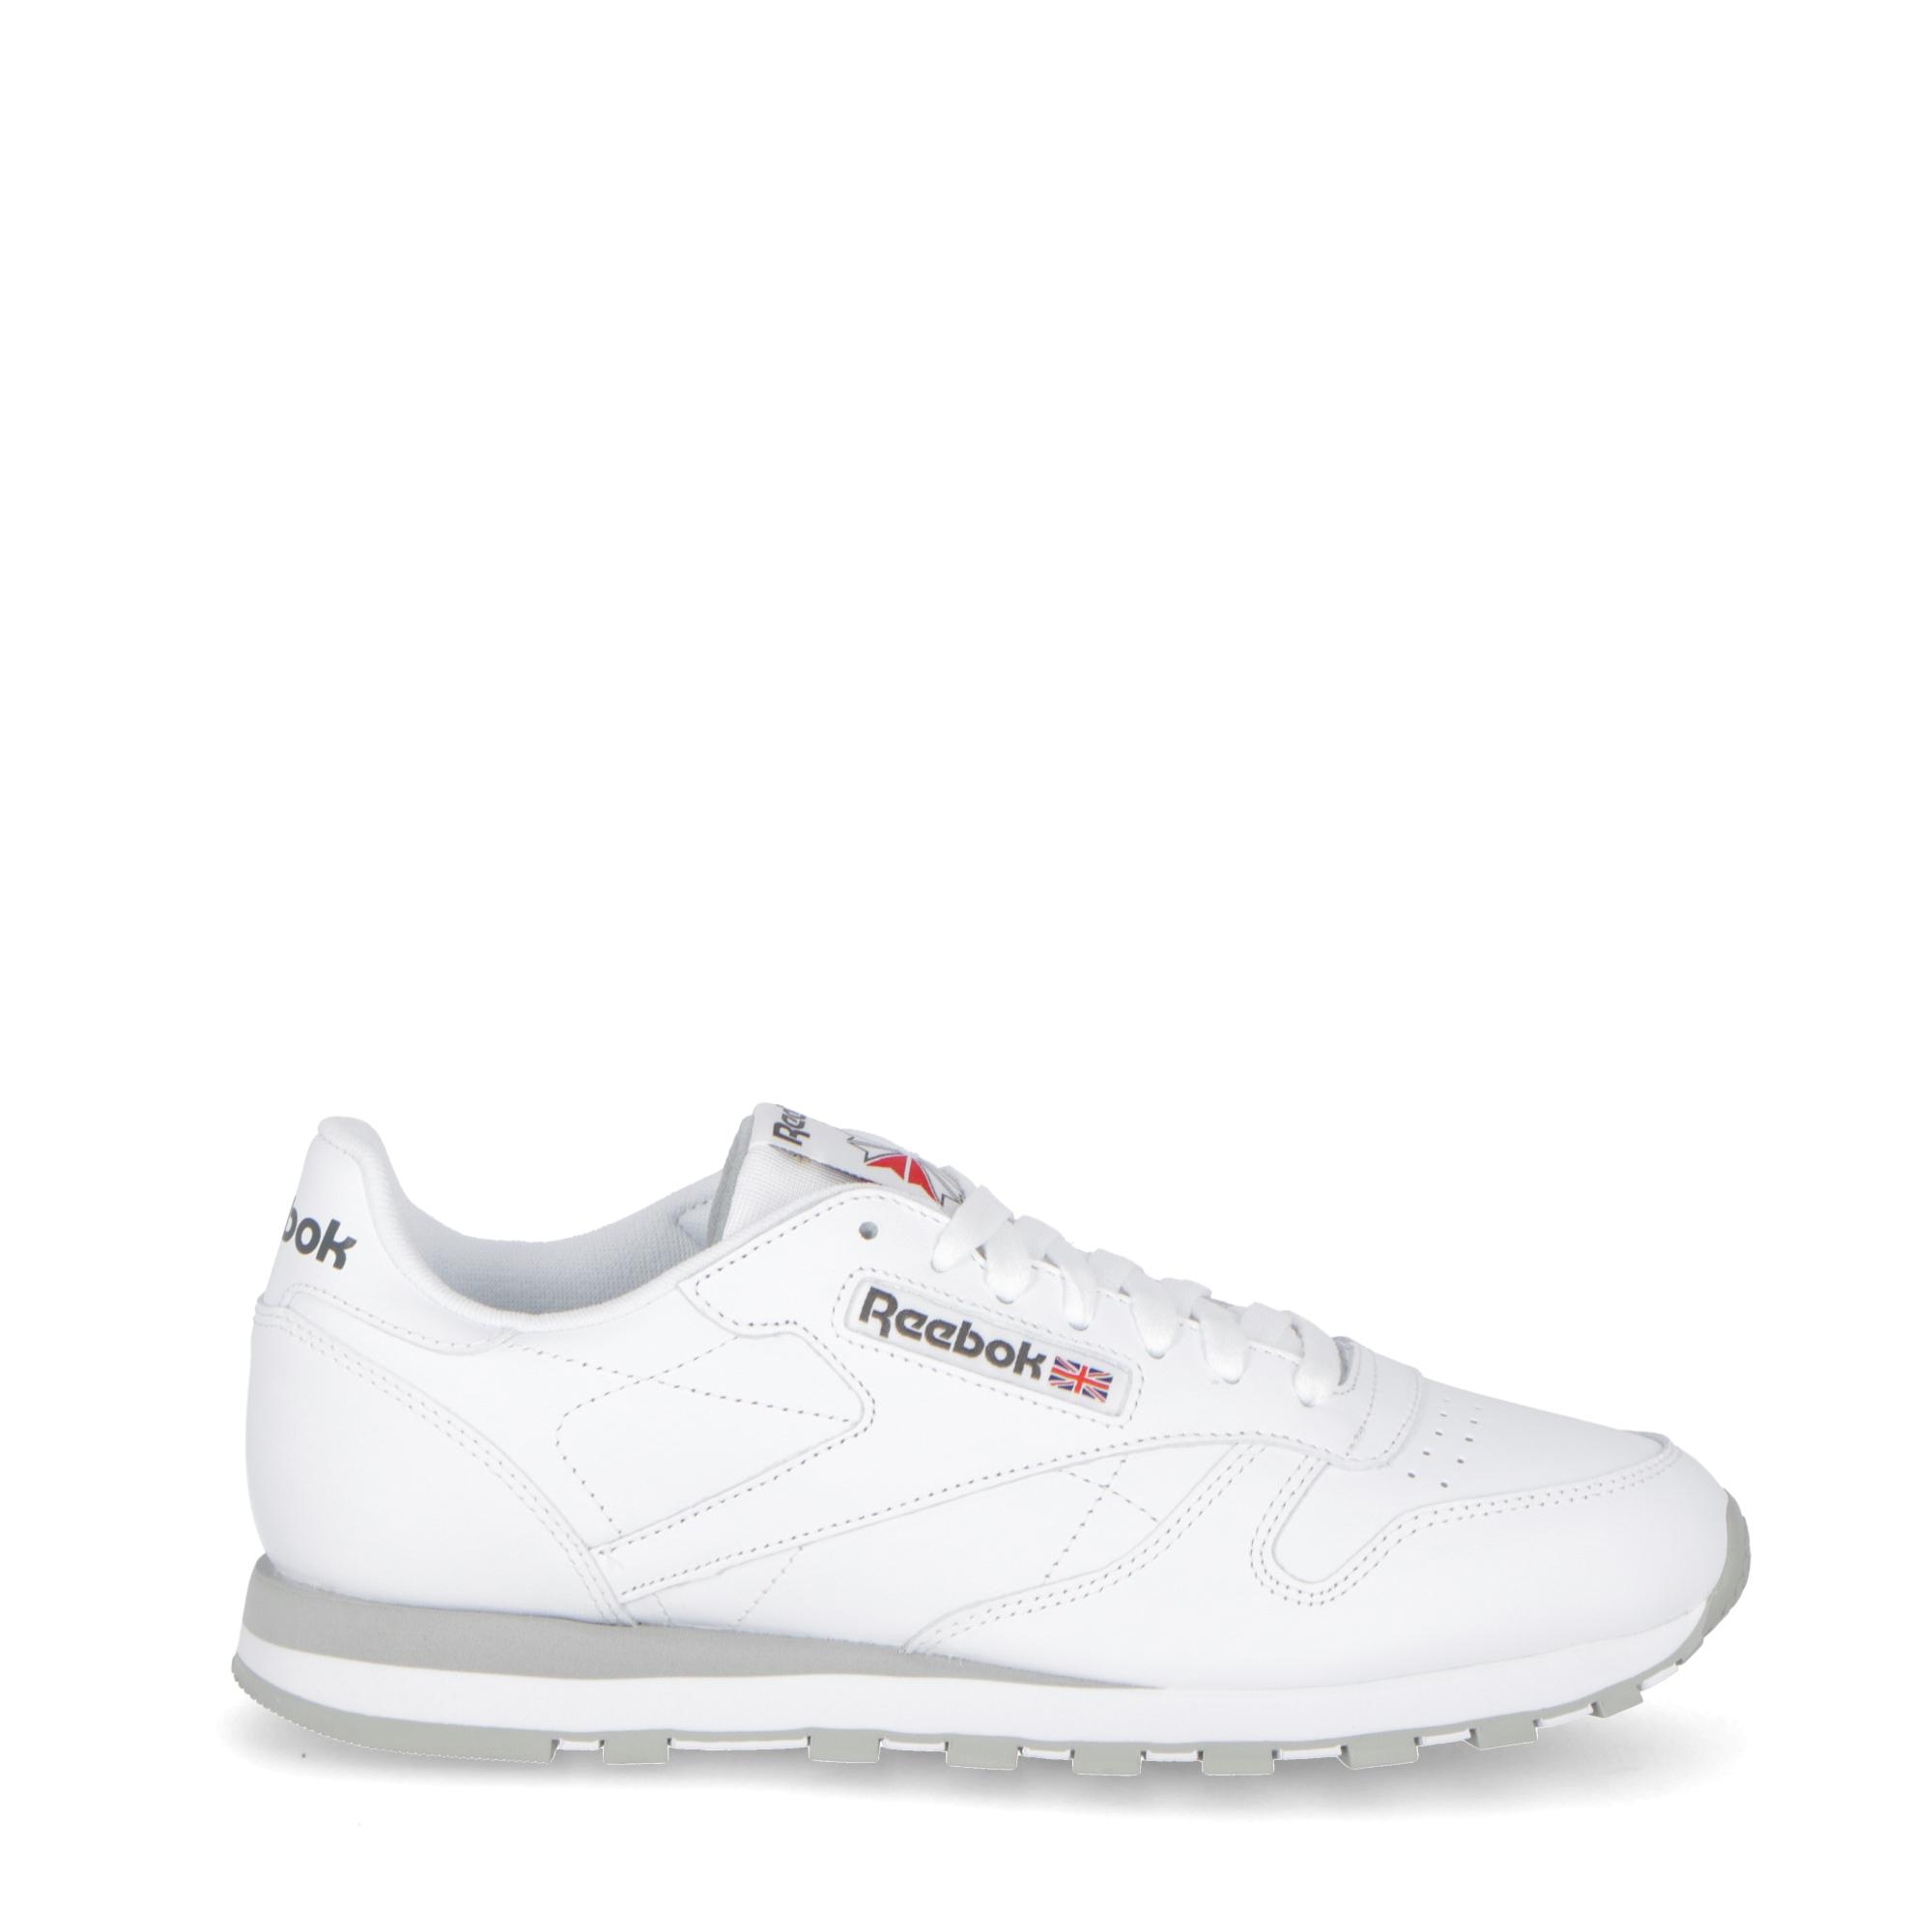 reputable site ee1ec 83f01 REEBOK CLASSIC LEATHER